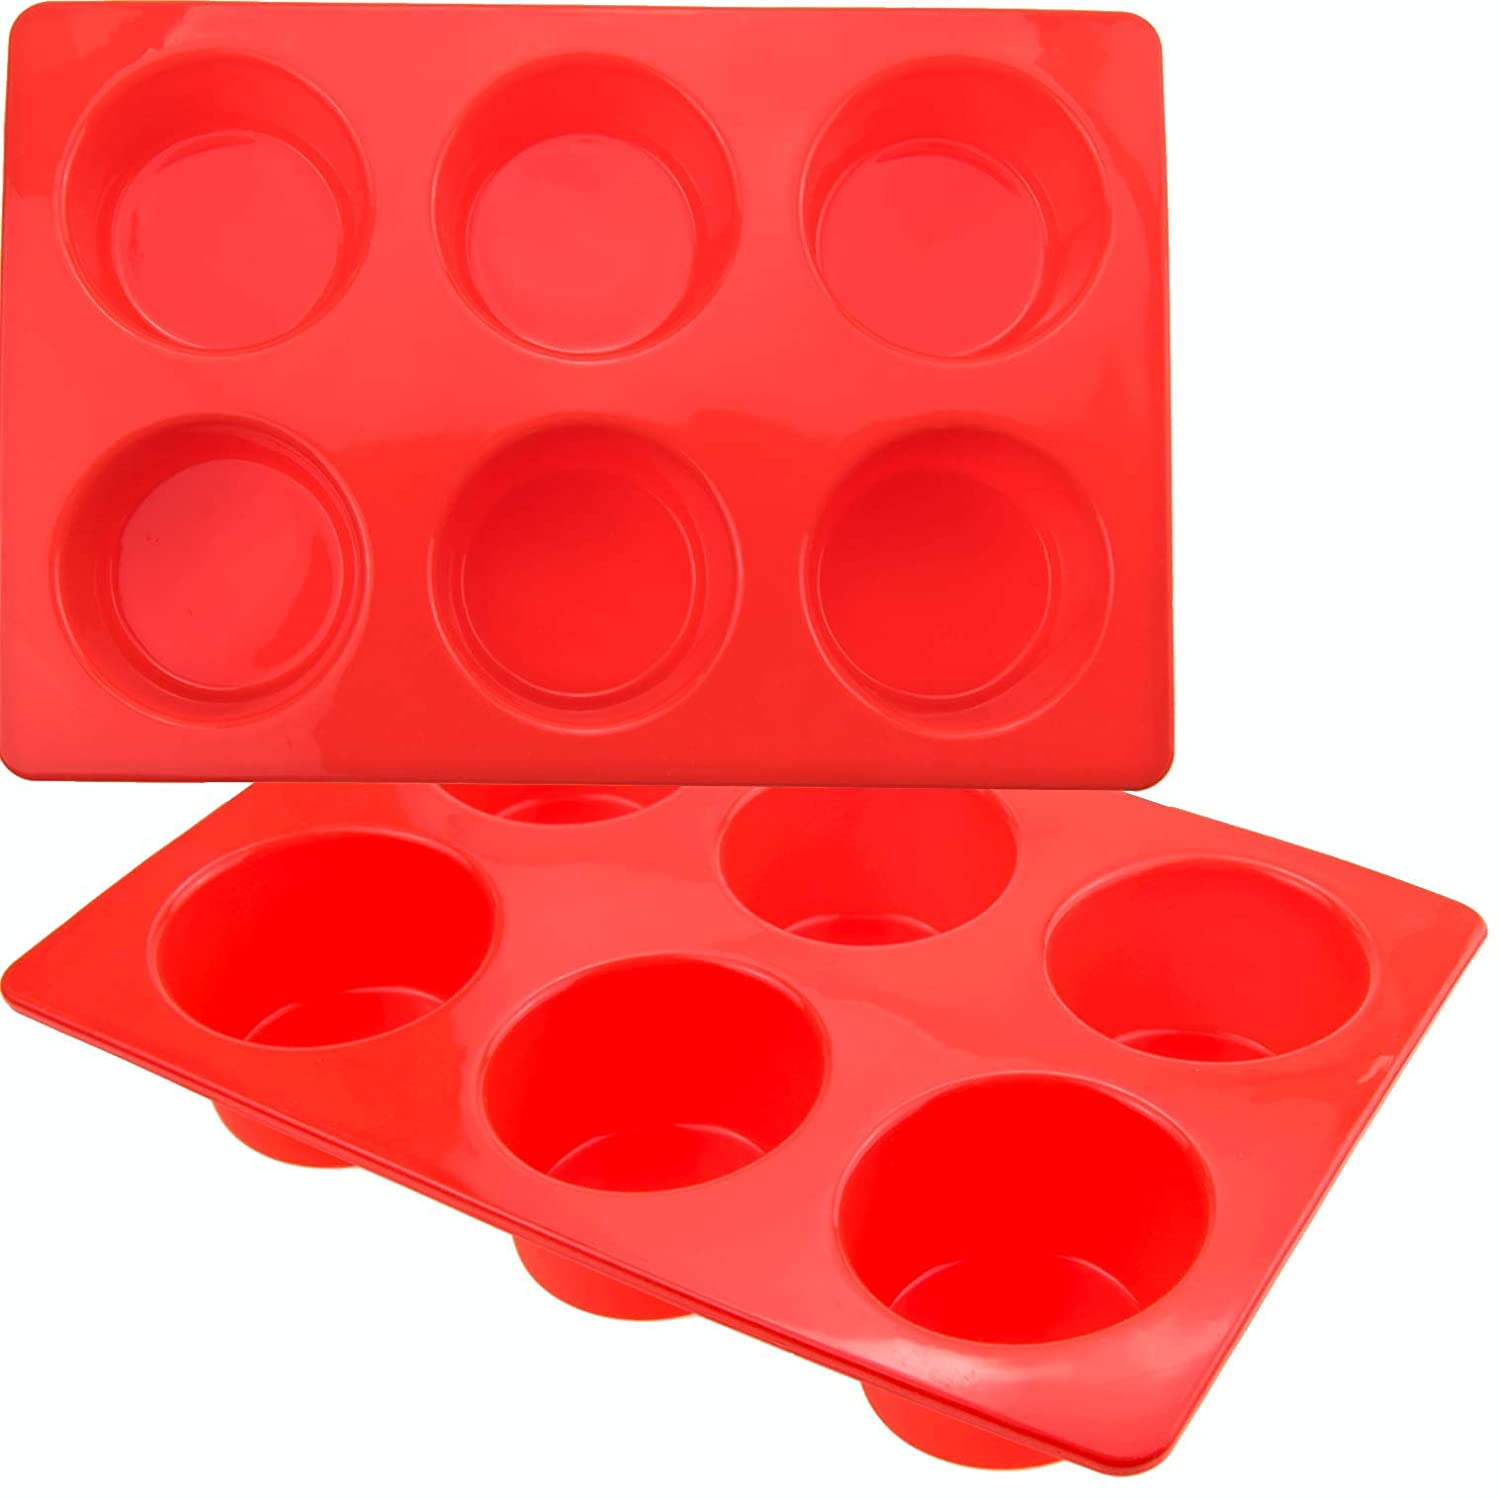 Wolecok 2 Pack Muffin Pans Silicone Muffin Tray Cupcake Cake Cases, moulds(6 holes, Red)